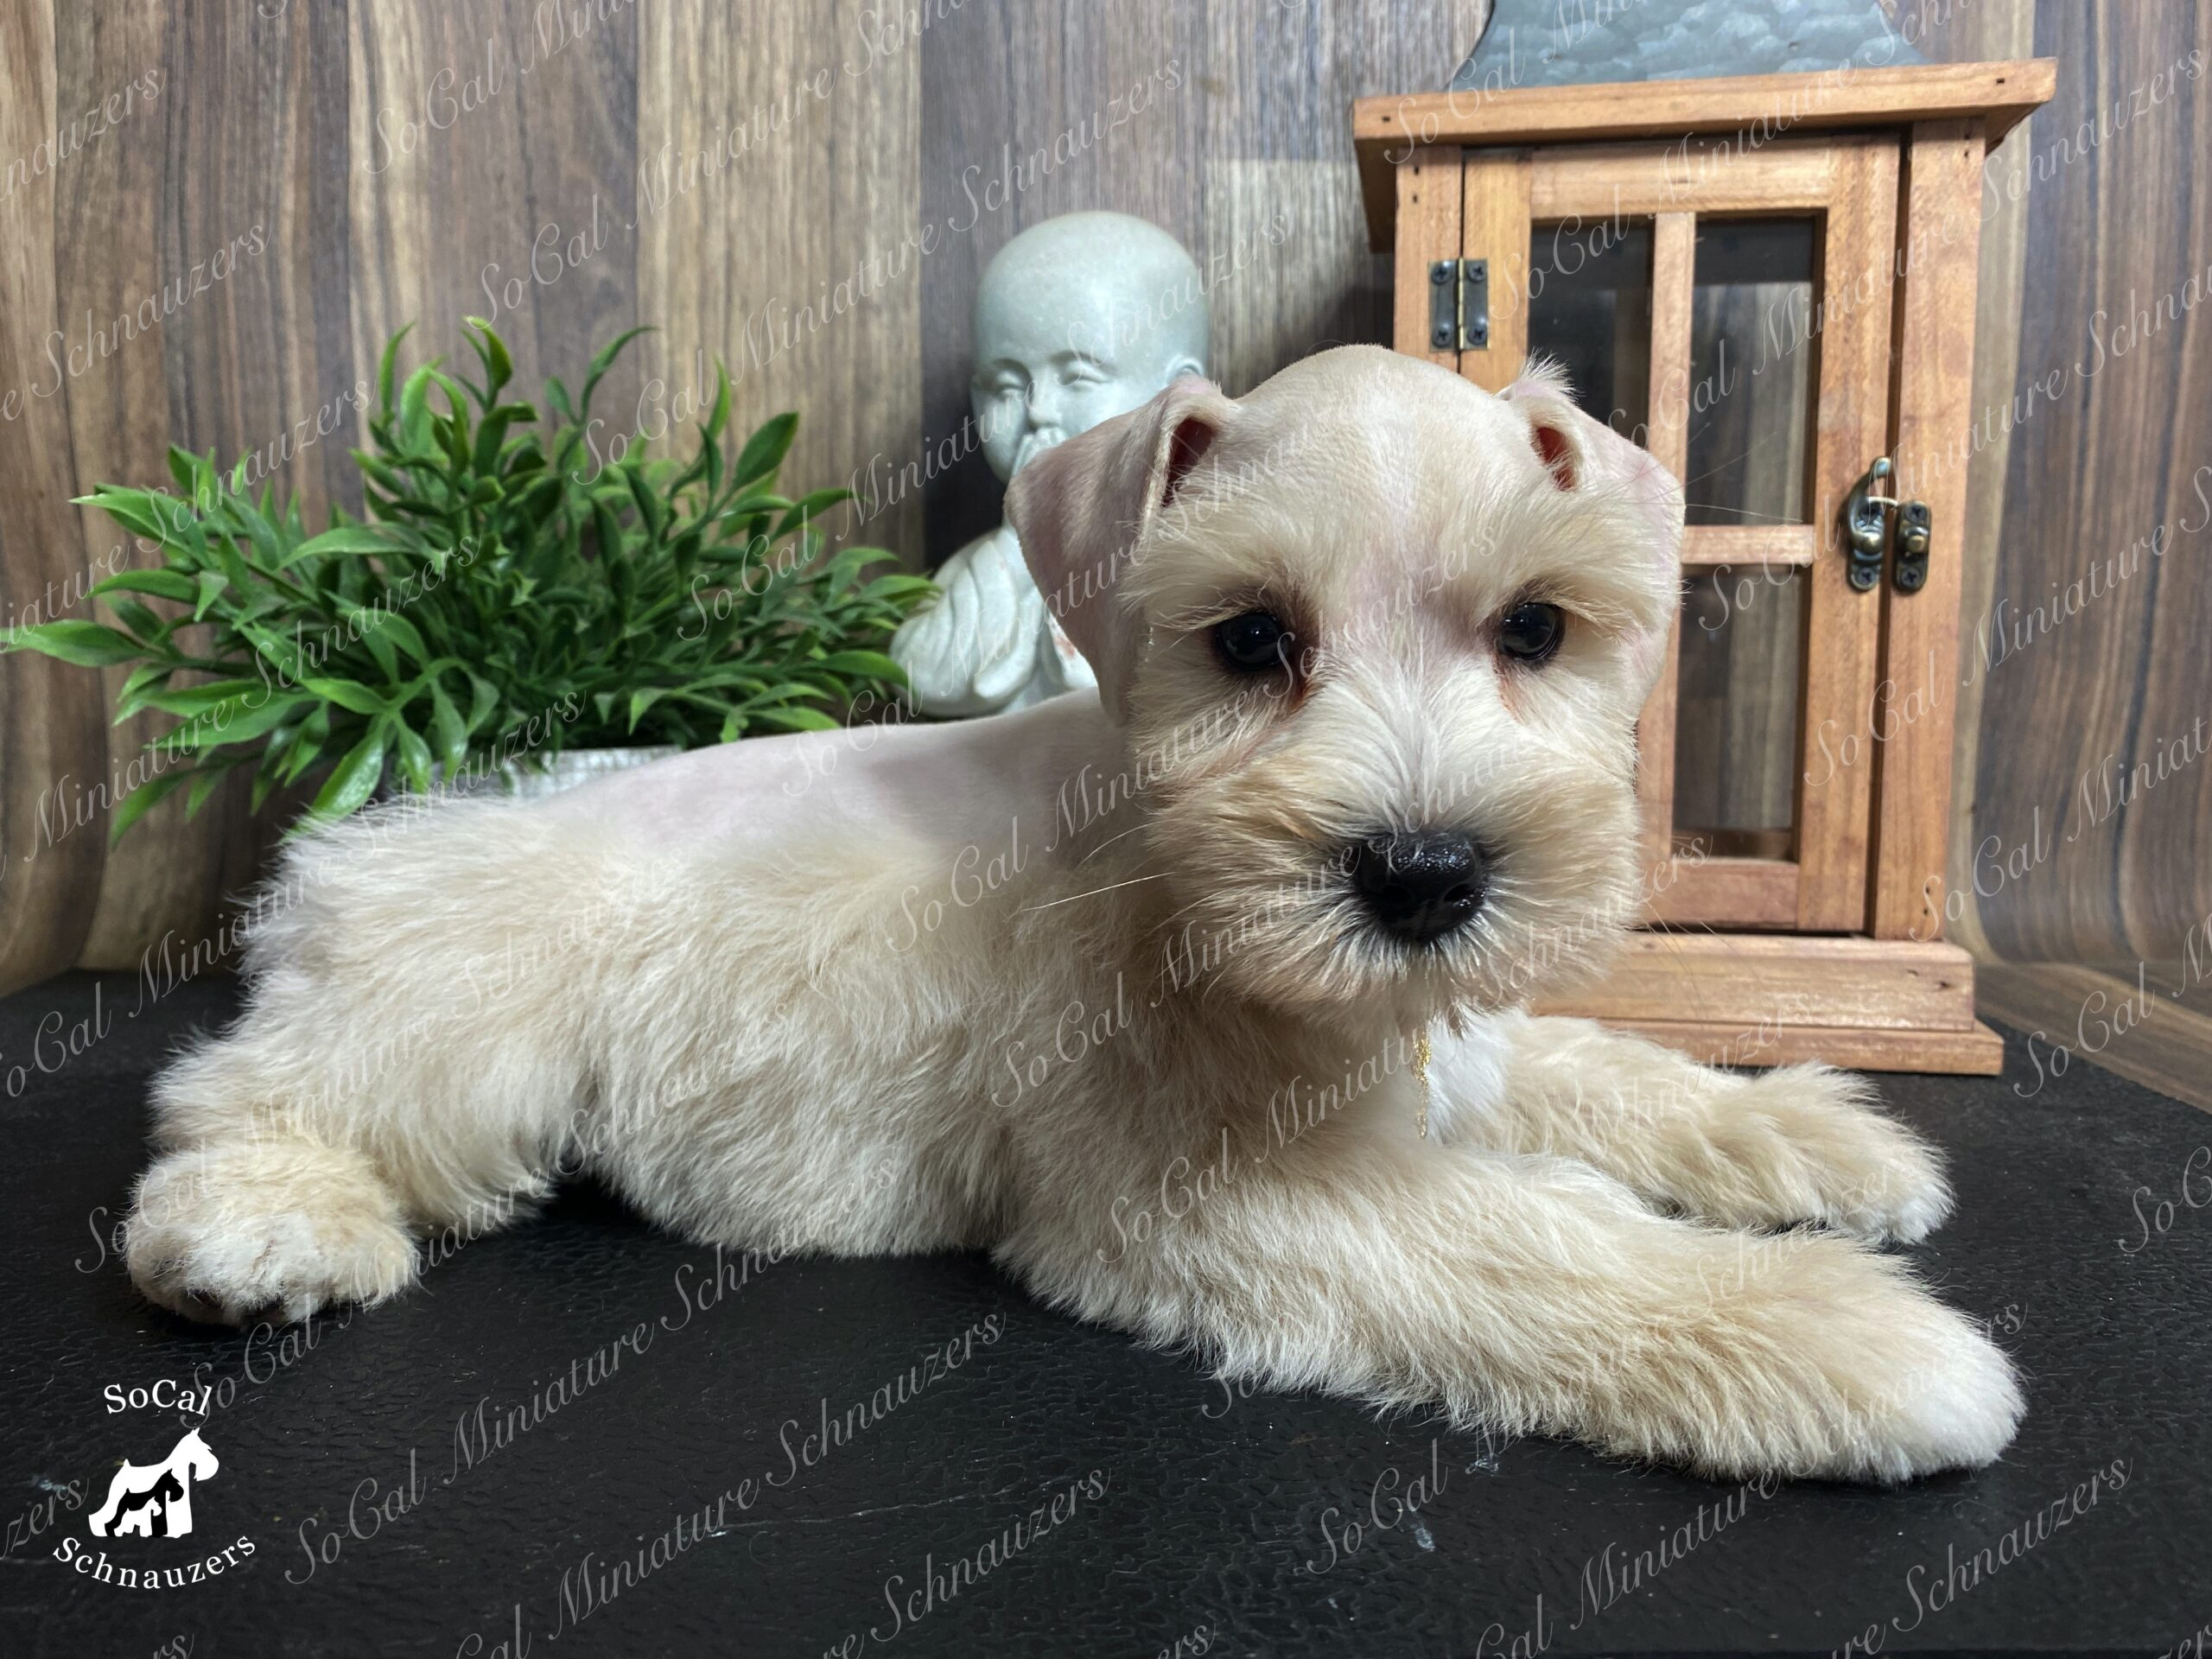 Lightly tanned schnauzer with plant and statue in background